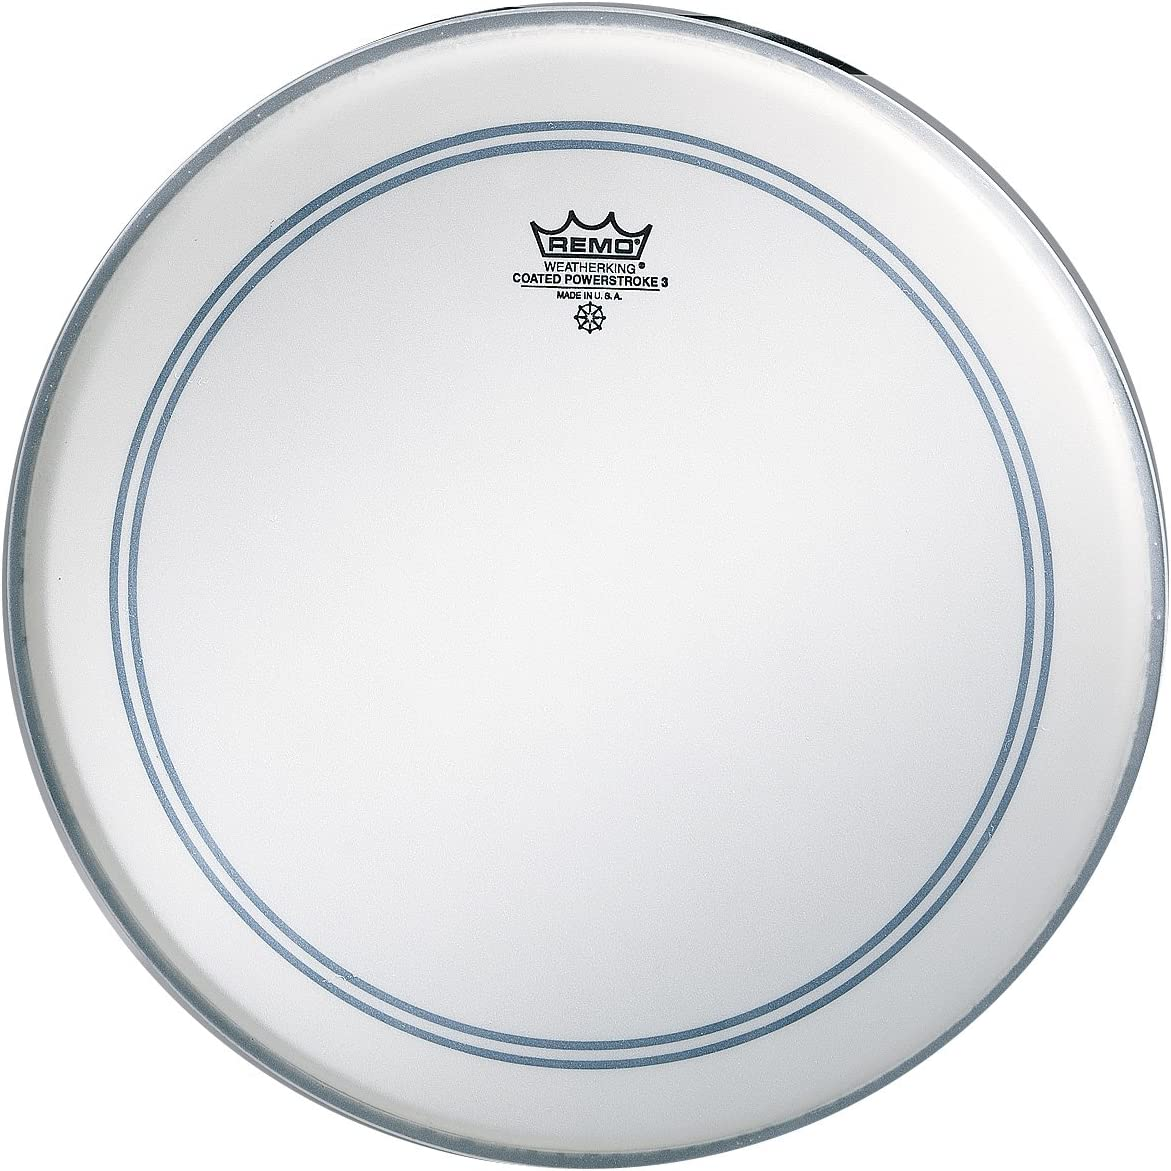 New product! New type Remo Drumhead P31123C2 Shipping included Pack